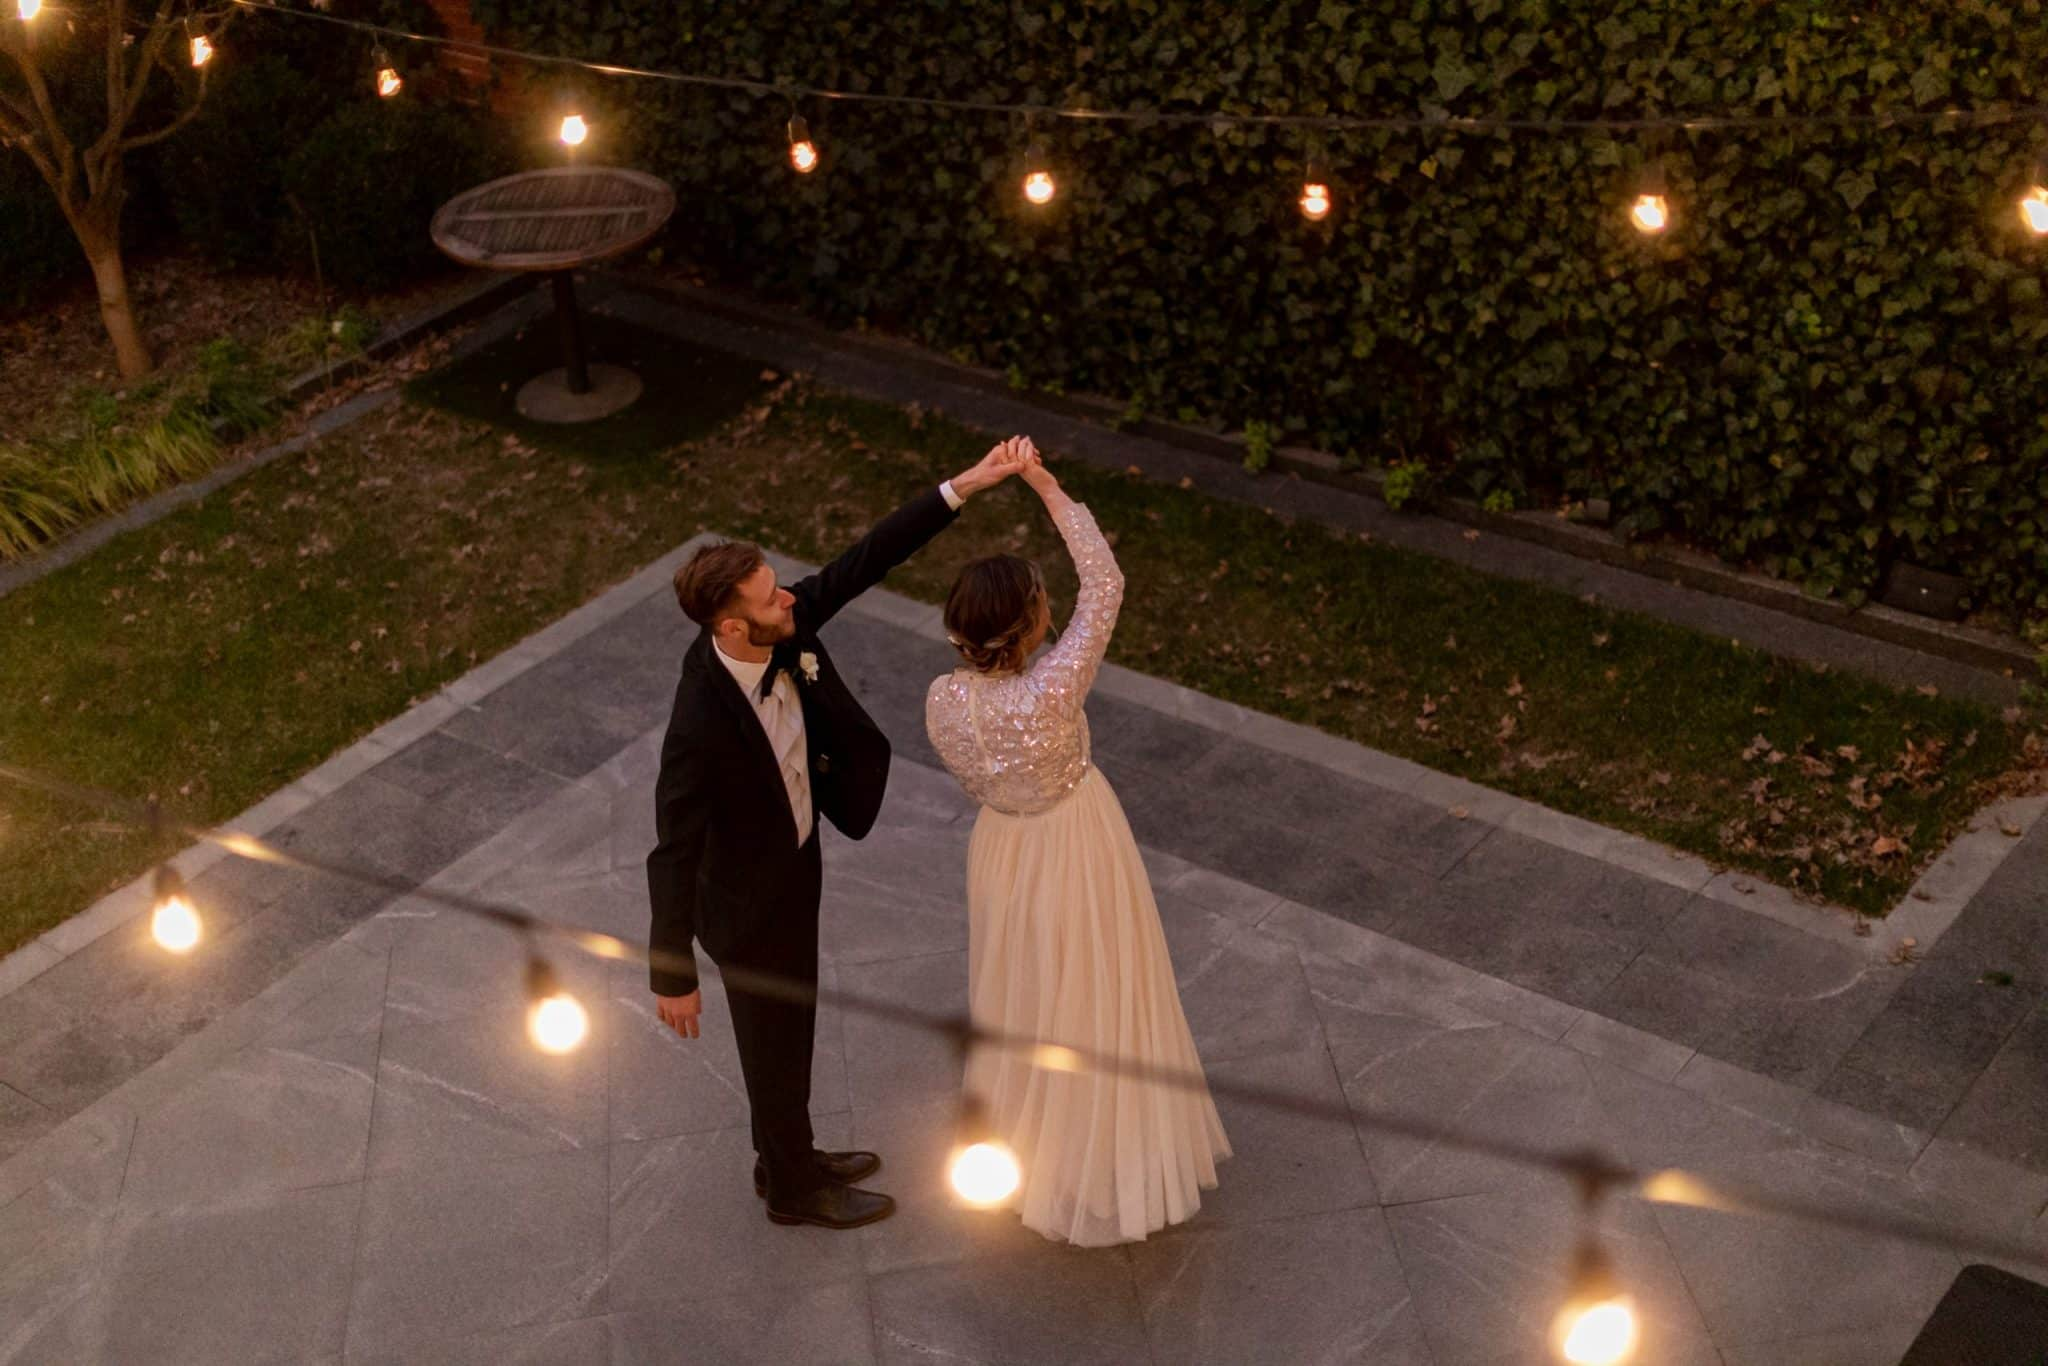 Bride and groom dancing in the courtyard